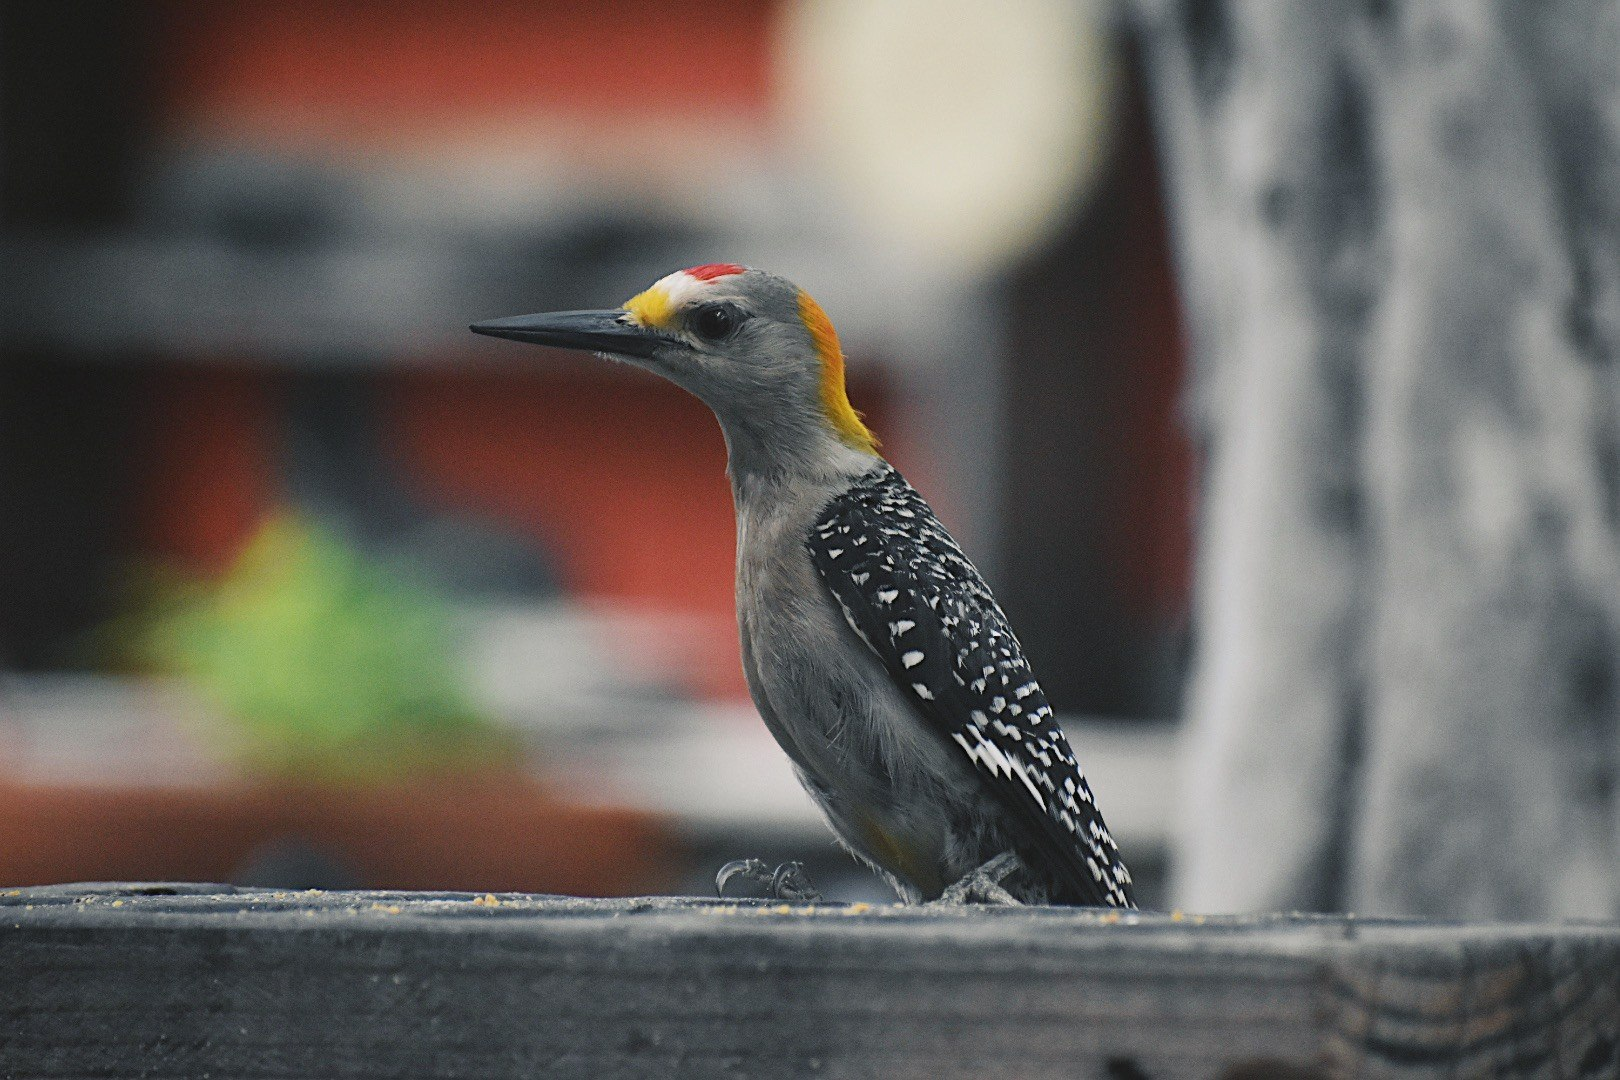 Golden-fronted Woodpecker by Catherine O'Brien